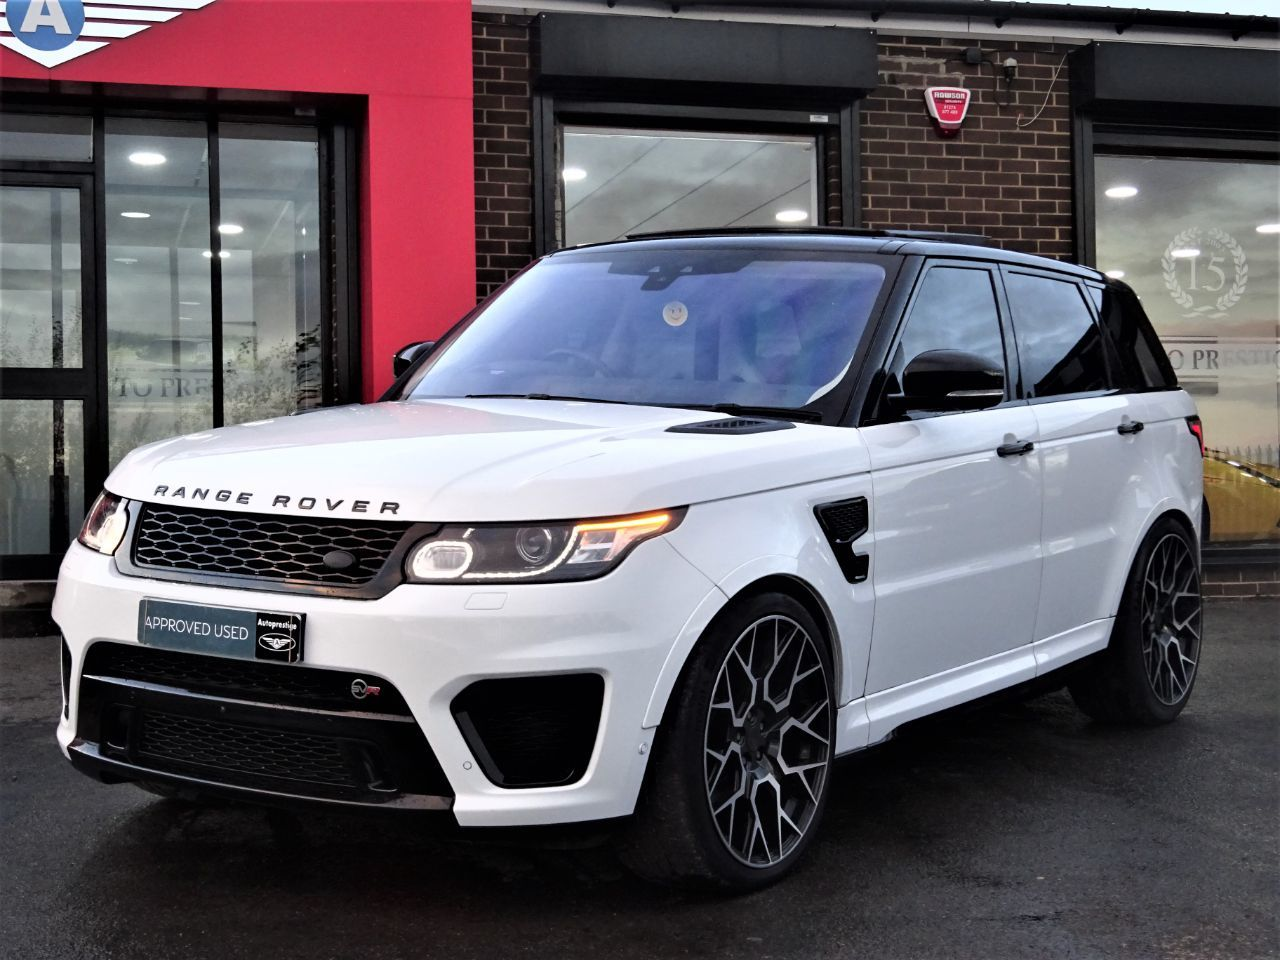 Used Cars For Sale In Bradford West Yorkshire At Autoprestige